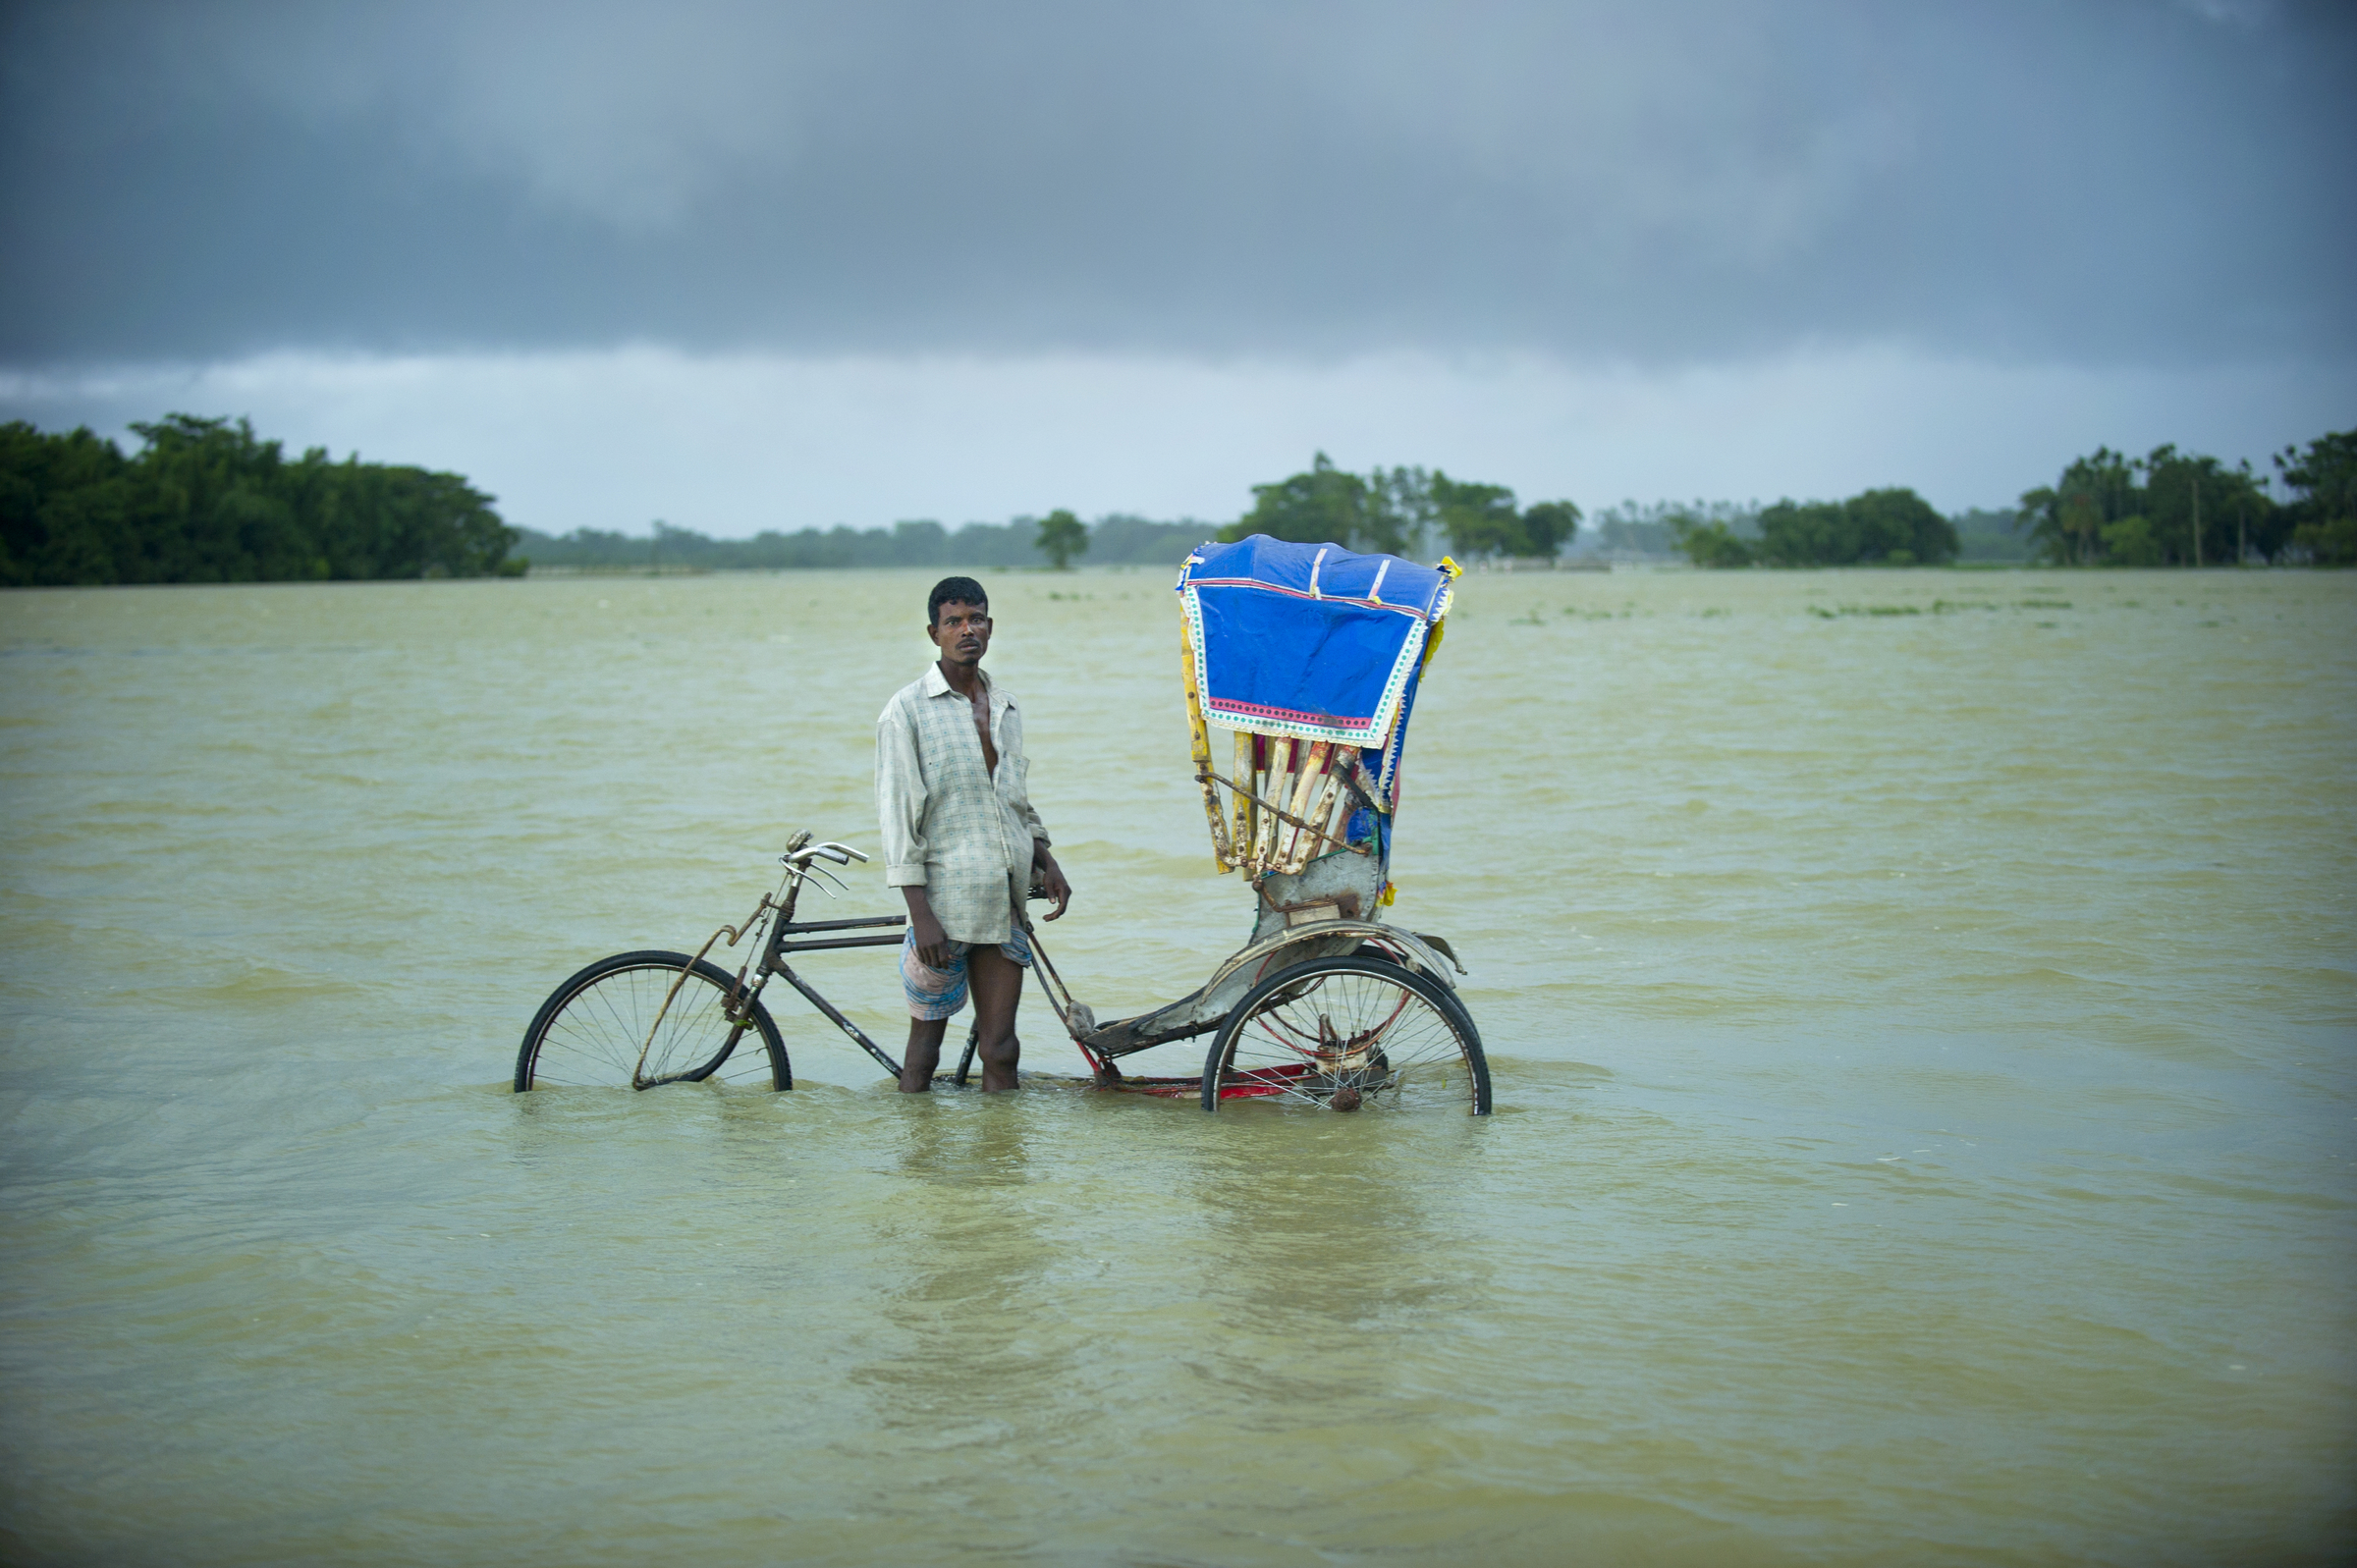 A rickshaw puller walks along a flooded road in Bangladesh. Scientists are predicting that climate change could lead to a rise in sea levels that would flood at least 17 percent of Bangladesh and create around 20-35 million refugees by 2050. 2010   © Ami Vitale